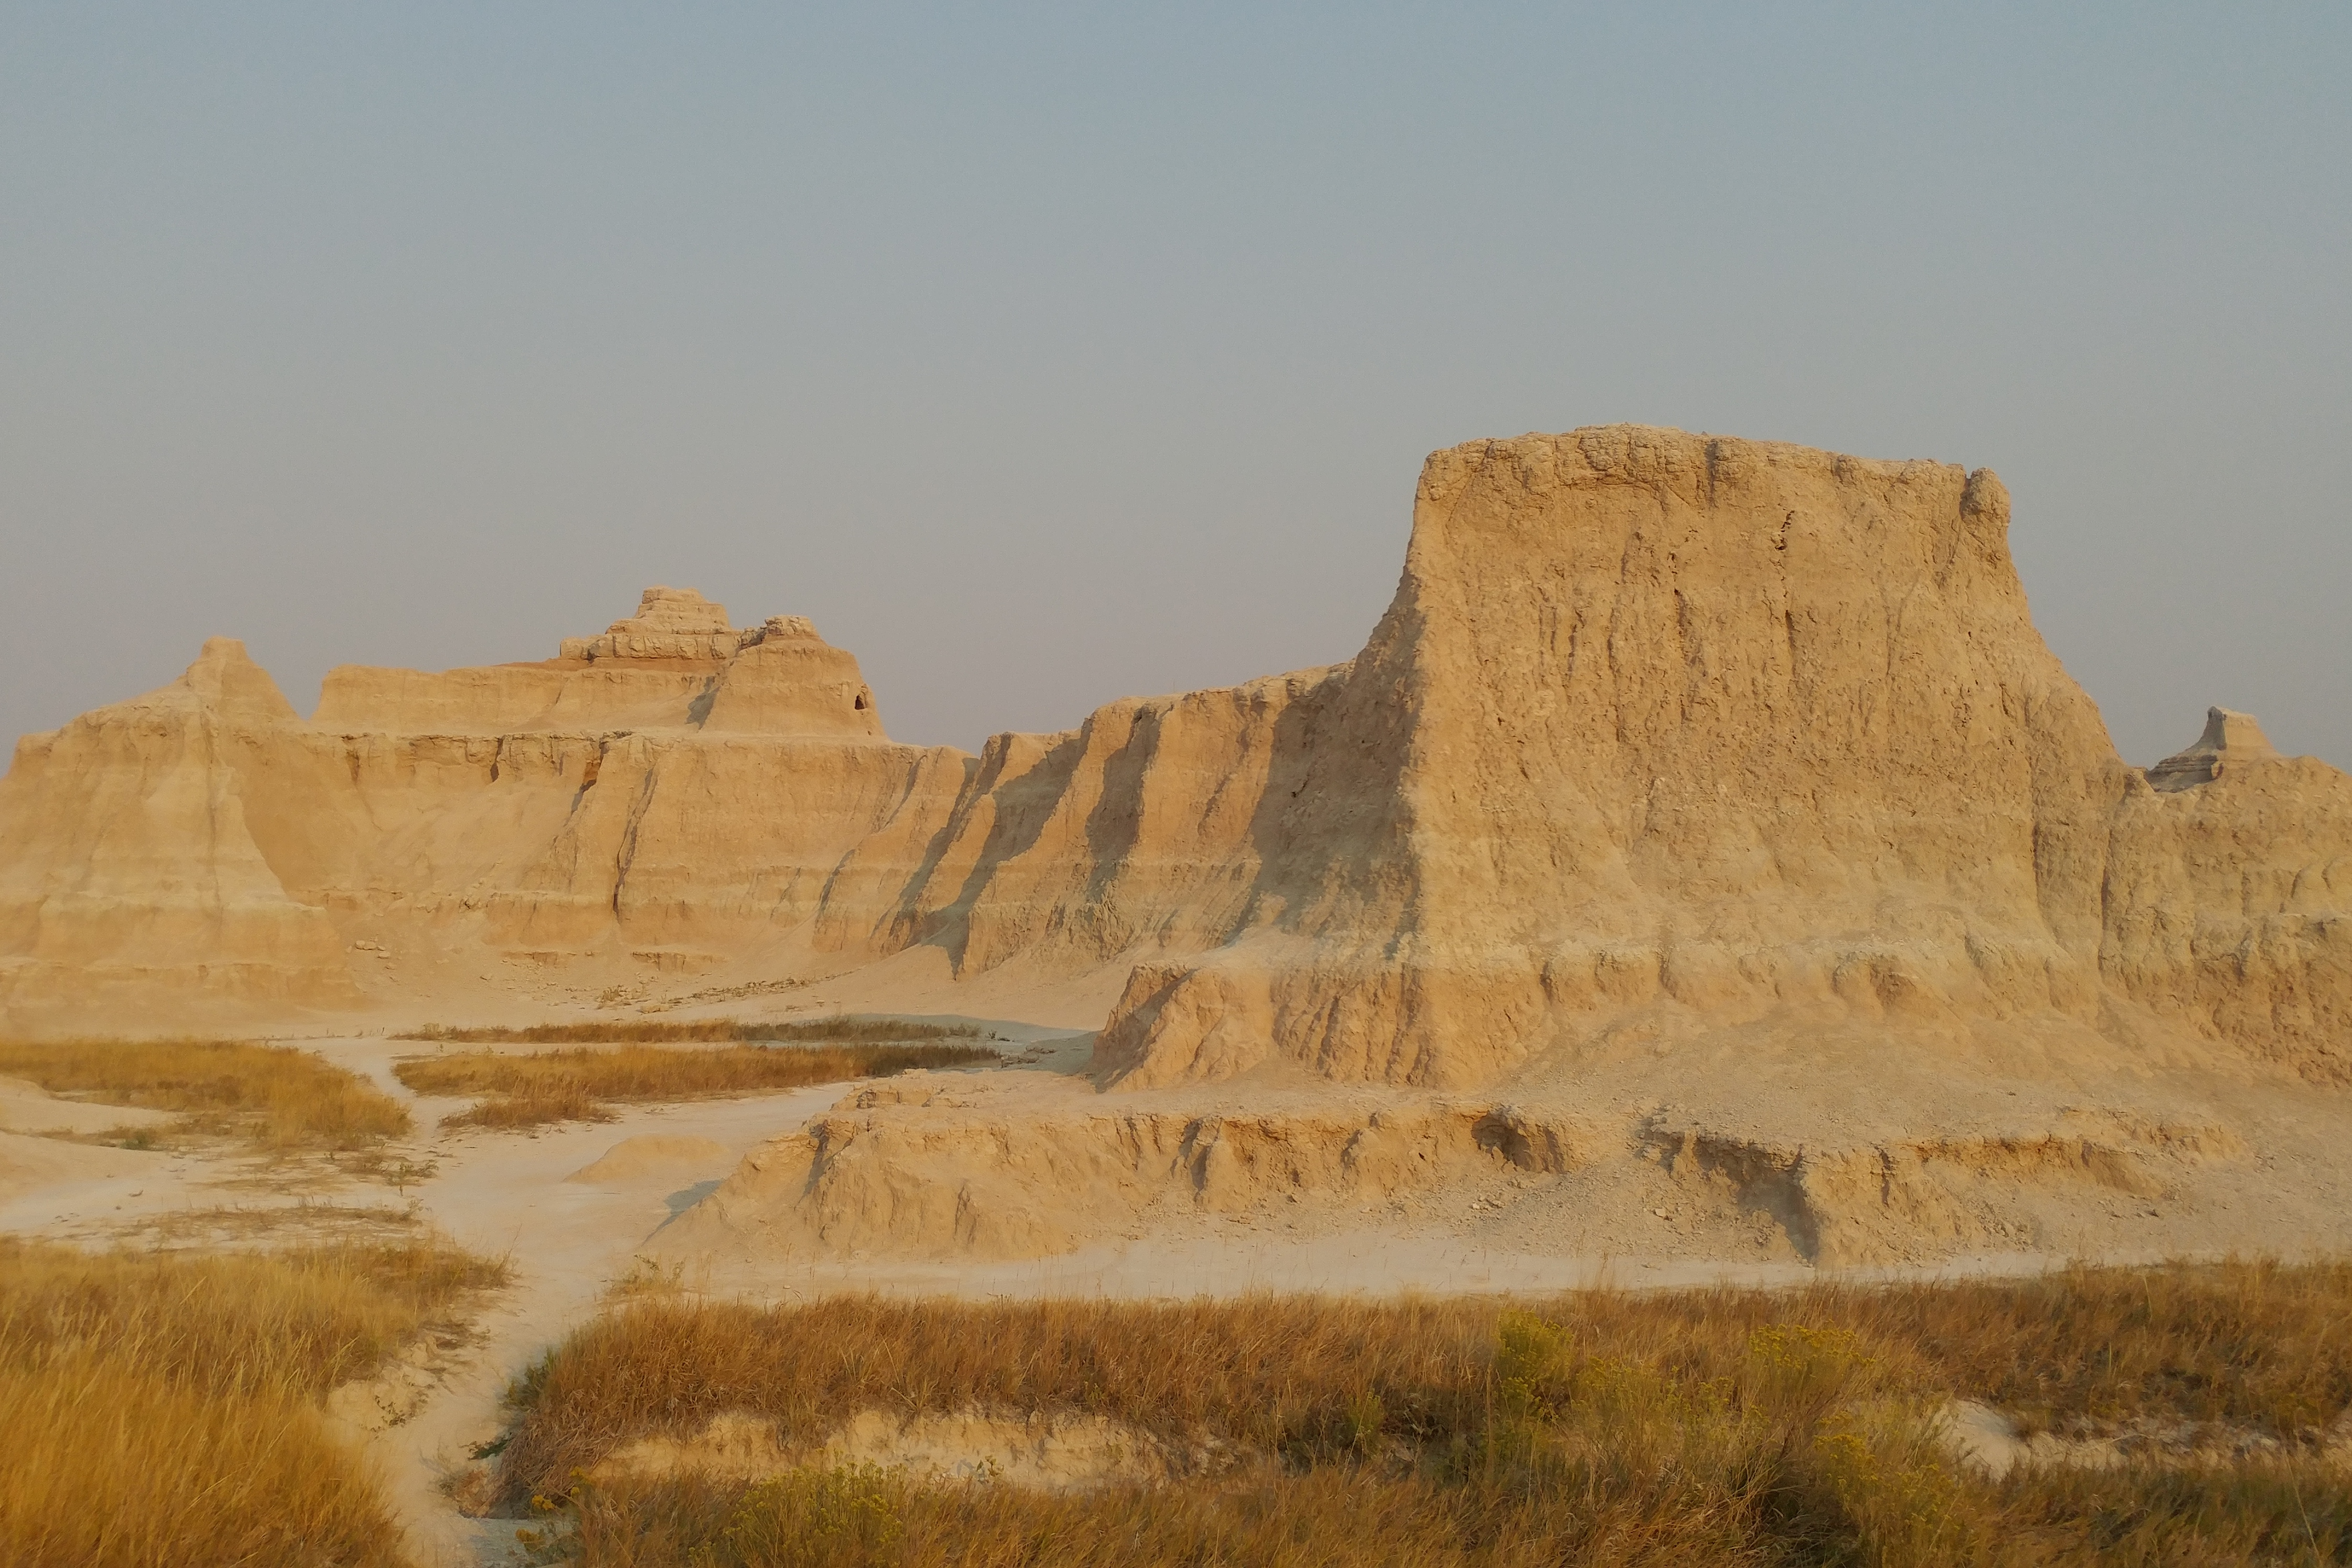 Badlands National Park 171 Our Wander Years